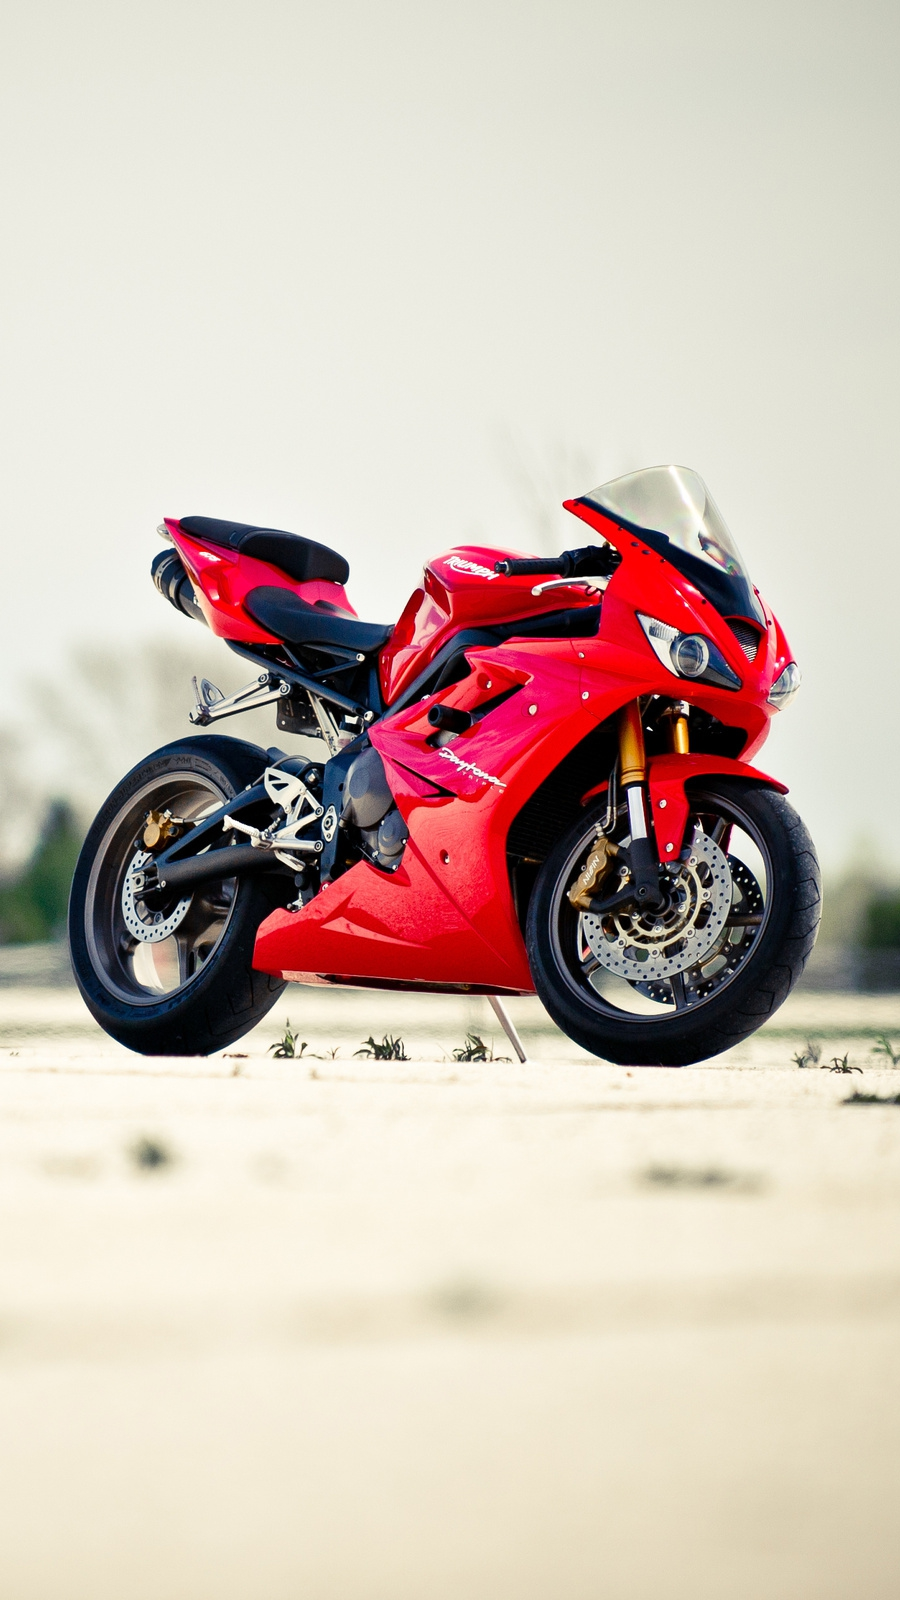 Triumph Daytona 675 Iphone Wallpaper Iphone Wallpapers